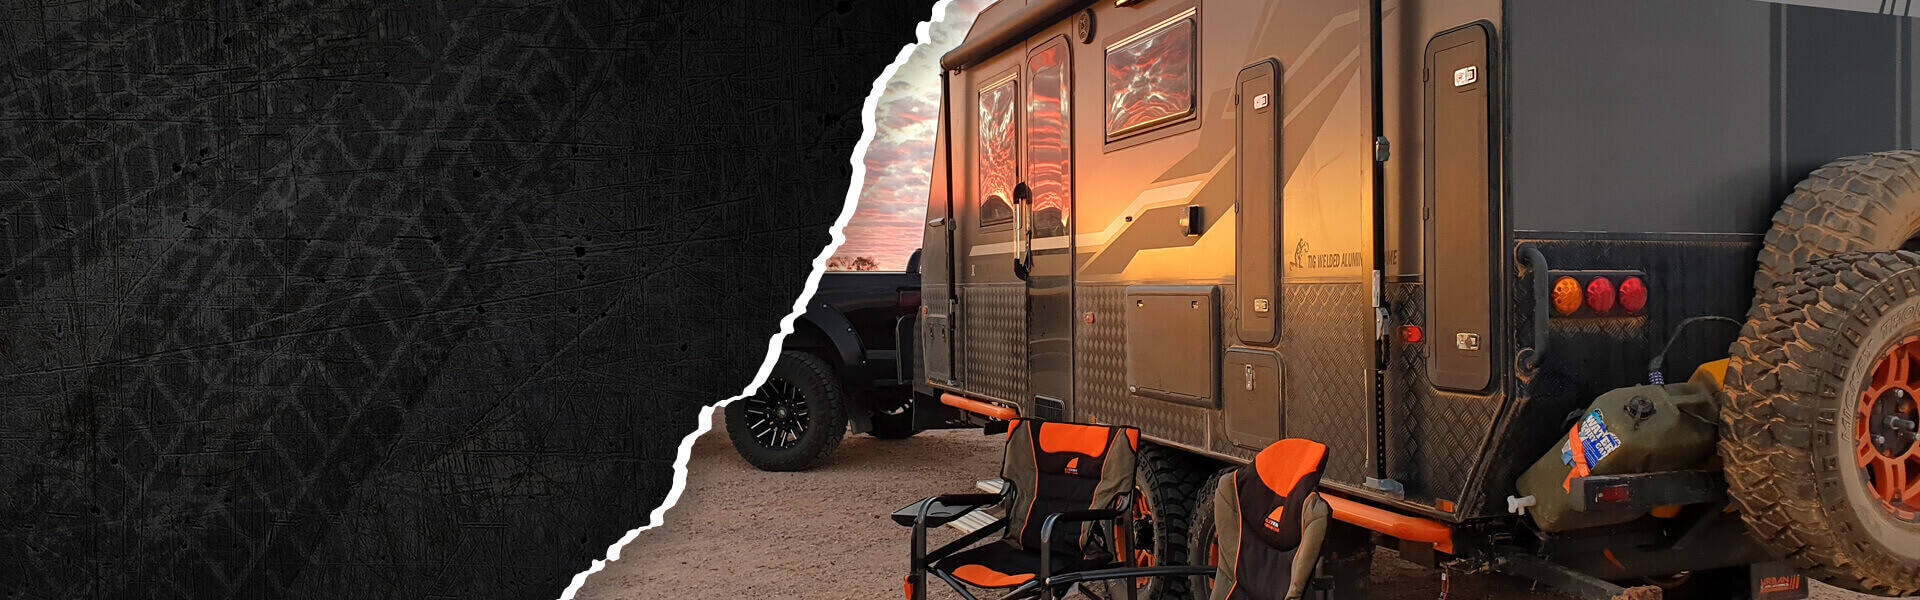 off-road-grid-off-the-chart-banner-bg